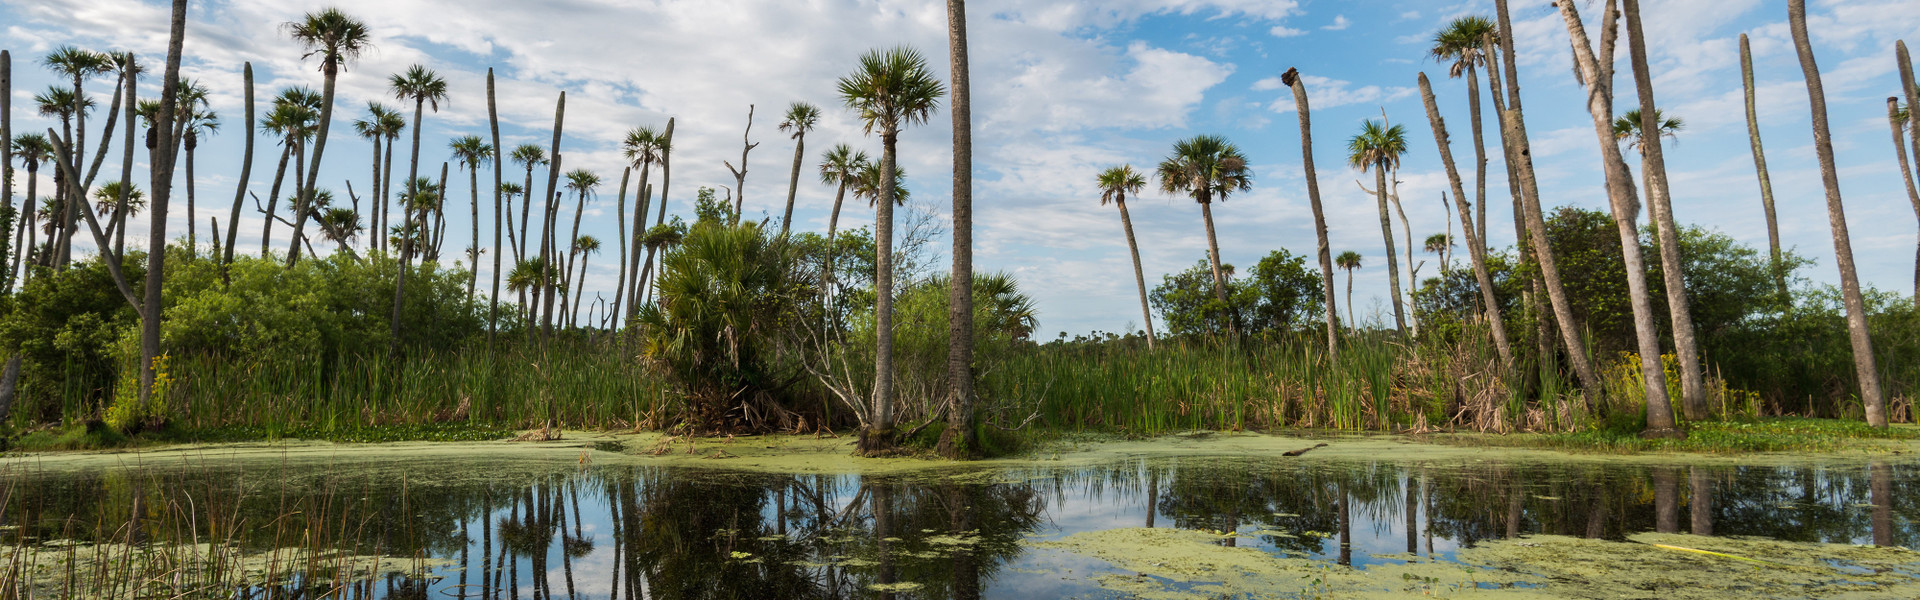 Airboat Rides near Orlando, FL | Kissimmee River during Airboat Tour